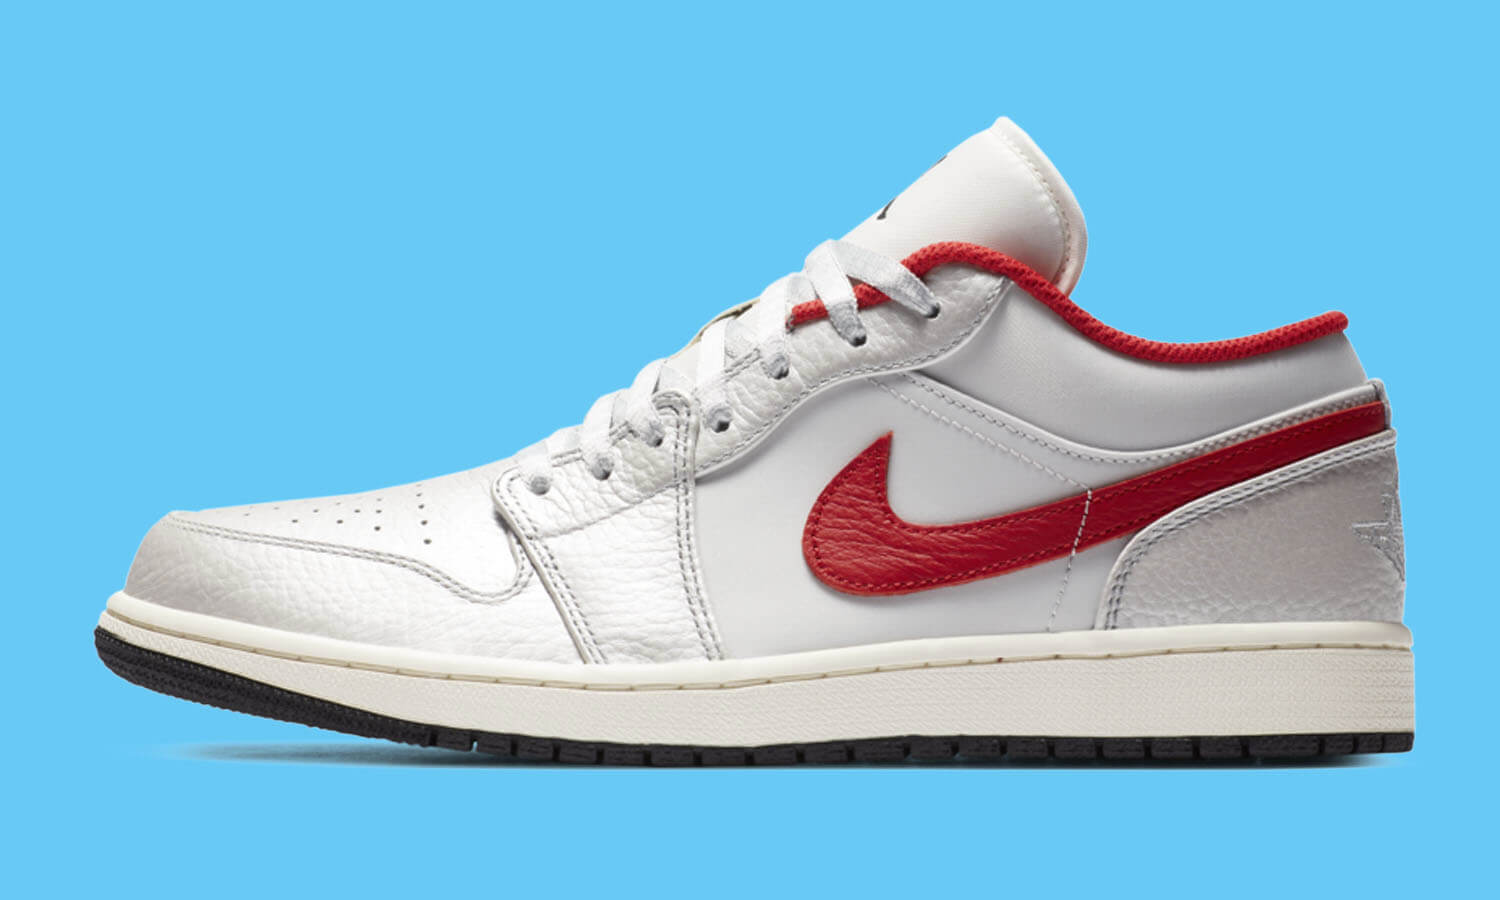 Nike Air Jordan 1 Low White Red